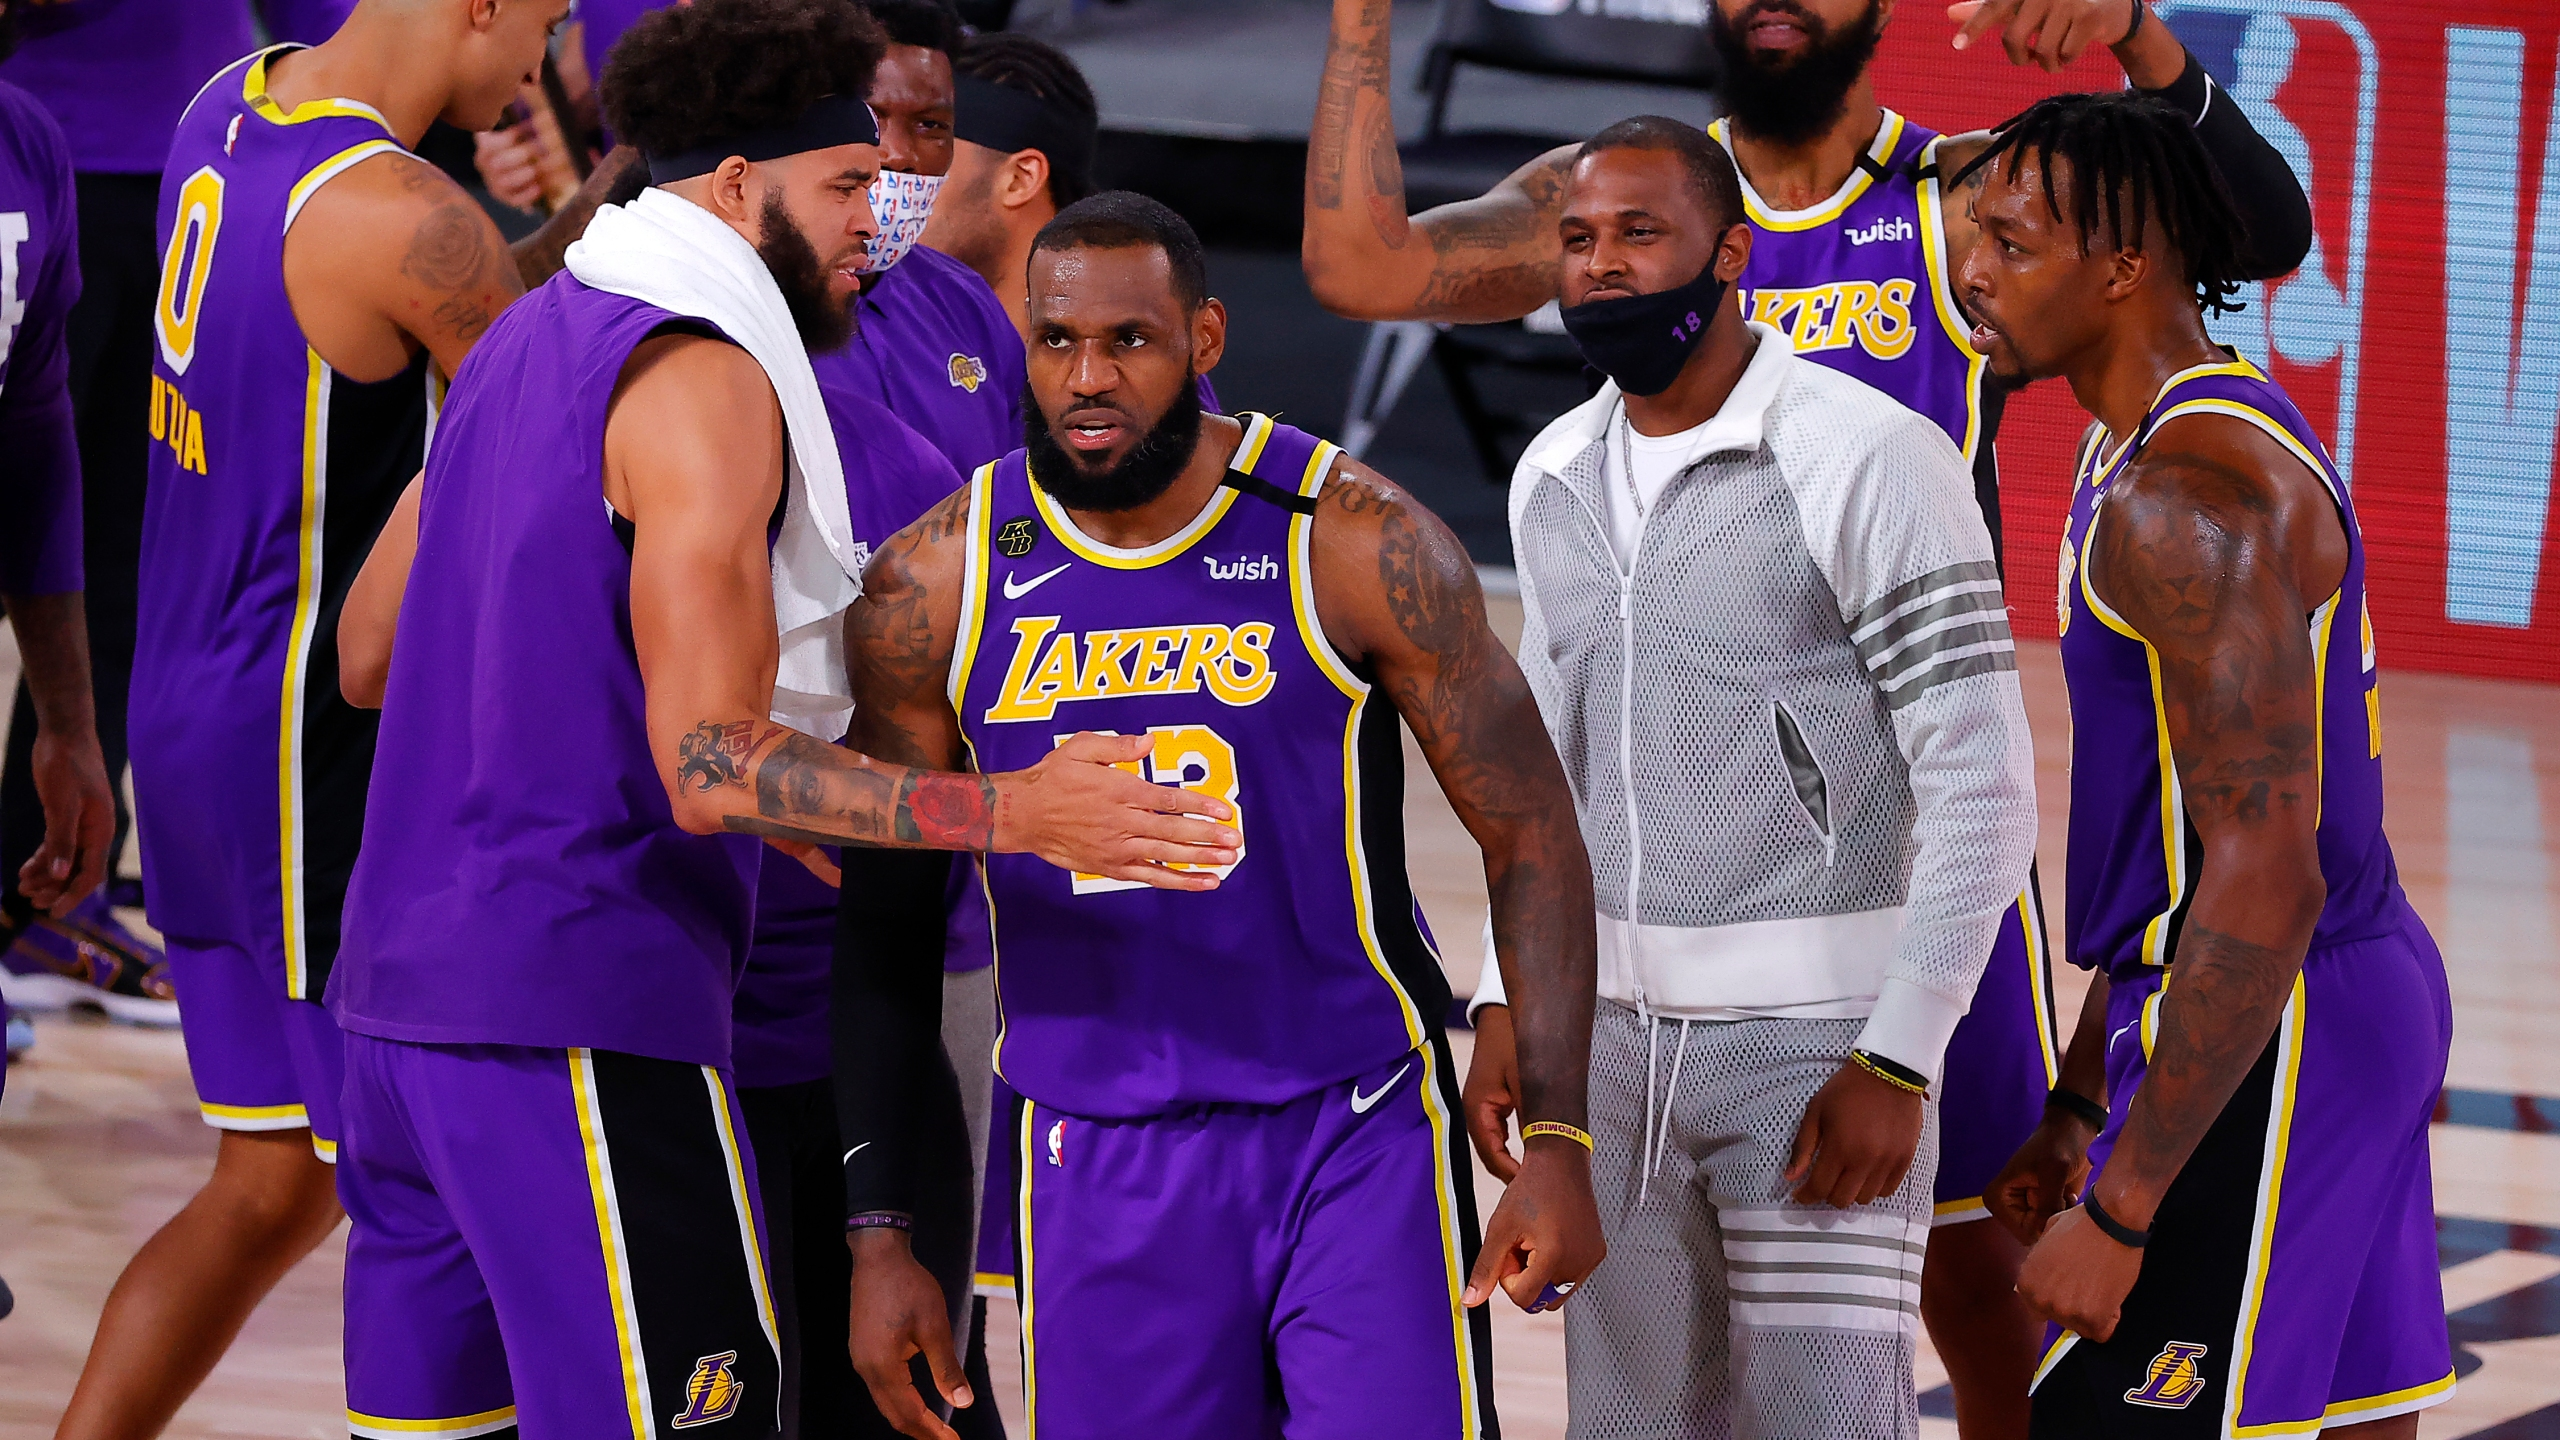 LeBron James #23 of the Los Angeles Lakers celebrates with teammates after their win against the Denver Nuggets in Game Five of the Western Conference Finals during the 2020 NBA Playoffs at AdventHealth Arena at the ESPN Wide World Of Sports Complex on Sept. 26, 2020 in Lake Buena Vista, Florida. (Kevin C. Cox/Getty Images)